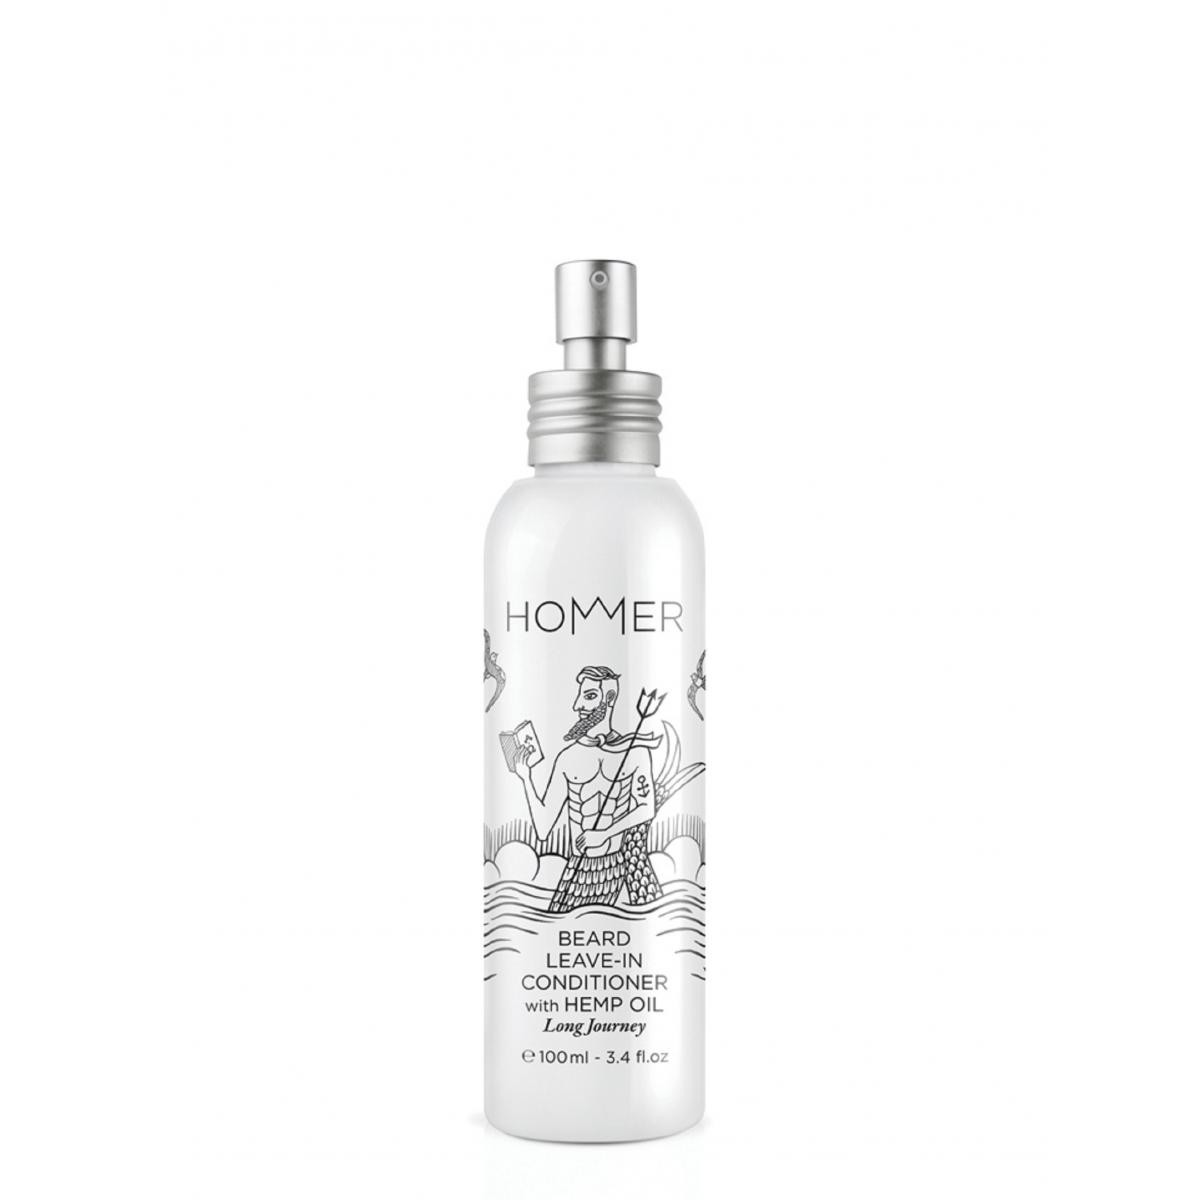 HOMMER BEARD LEAVE-IN CONDITIONER Long Journey Hommer